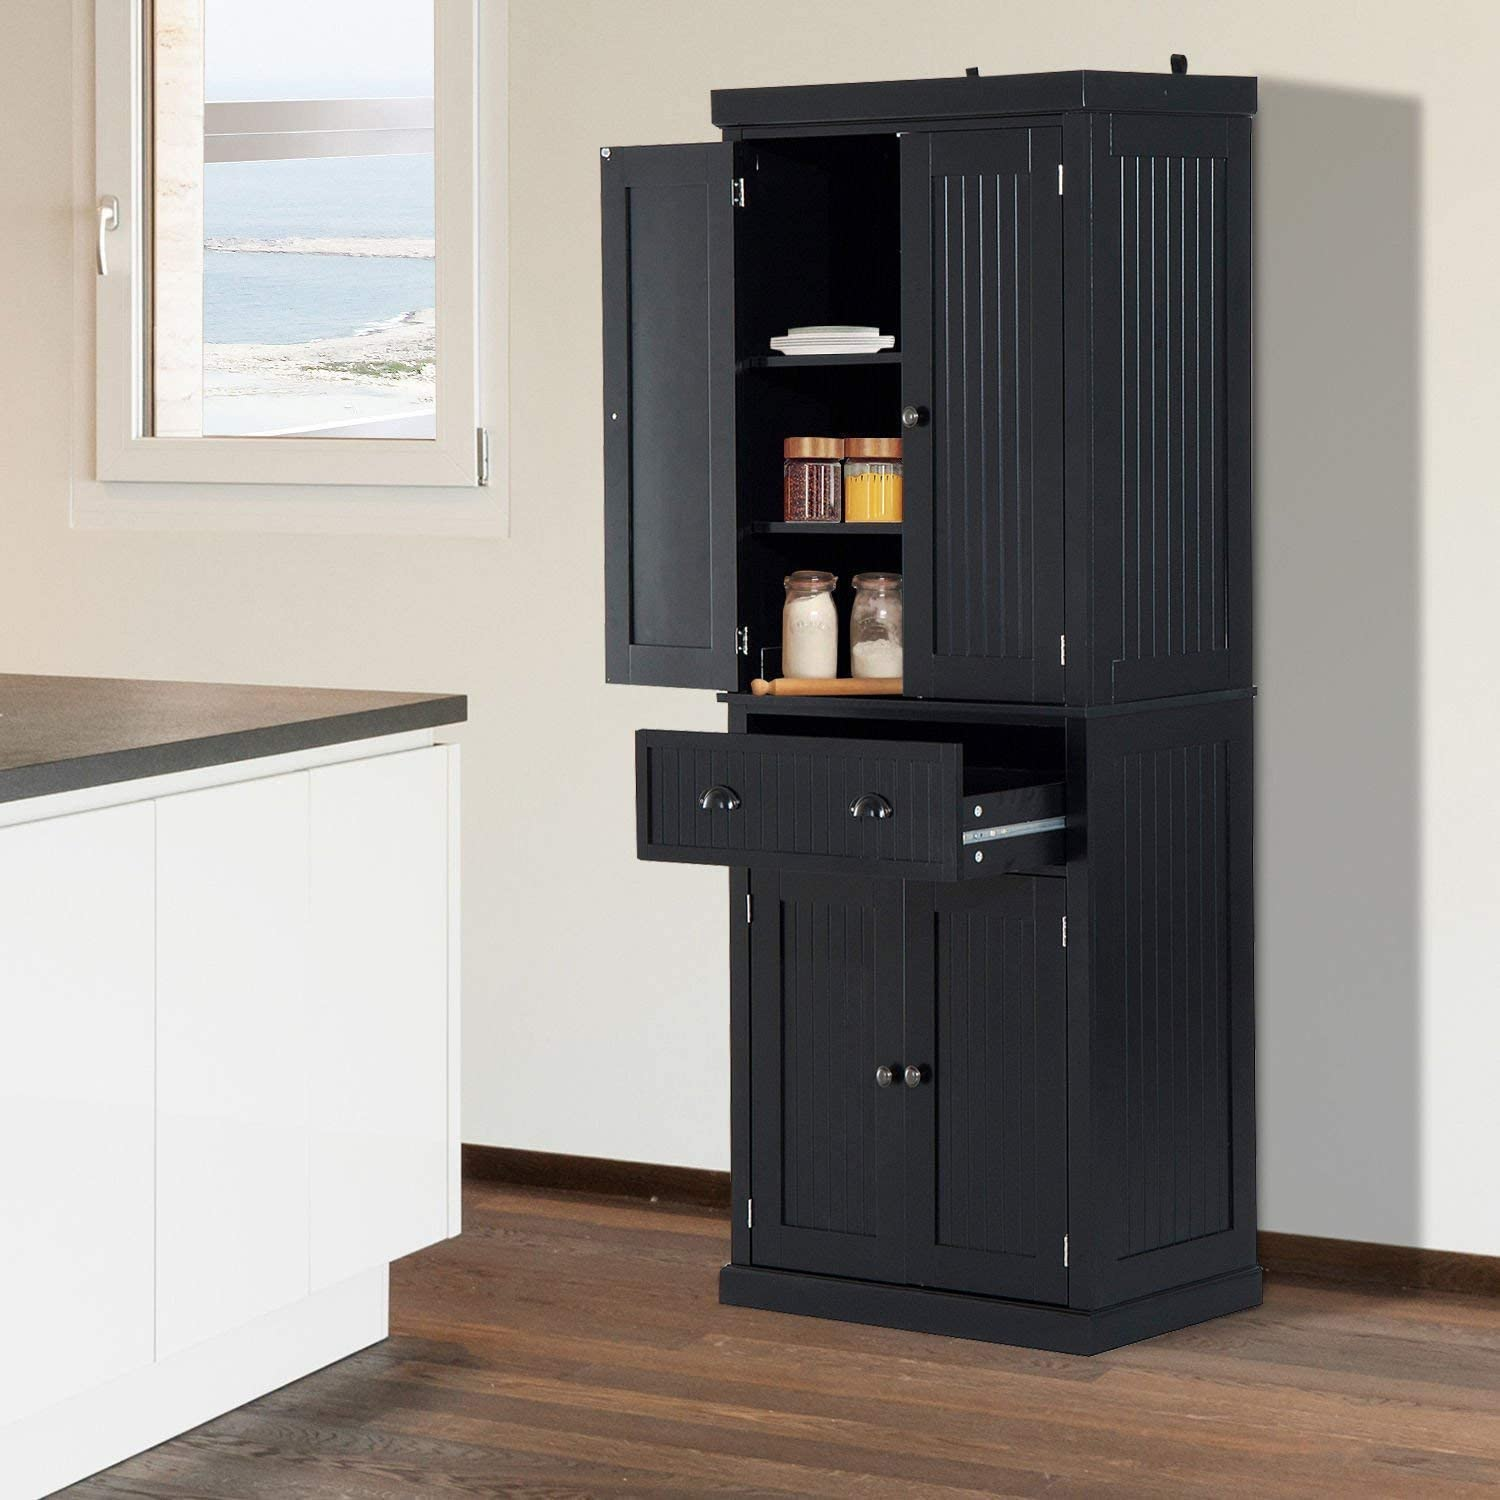 Festnight Tall Kitchen Pantry Storage Cabinet Traditional Standing Kitchen Pantry Cupboard Cabinet Black 72u201d  sc 1 st  Amazon.com : kitchen storage cabinets free standing - hauntedcathouse.org